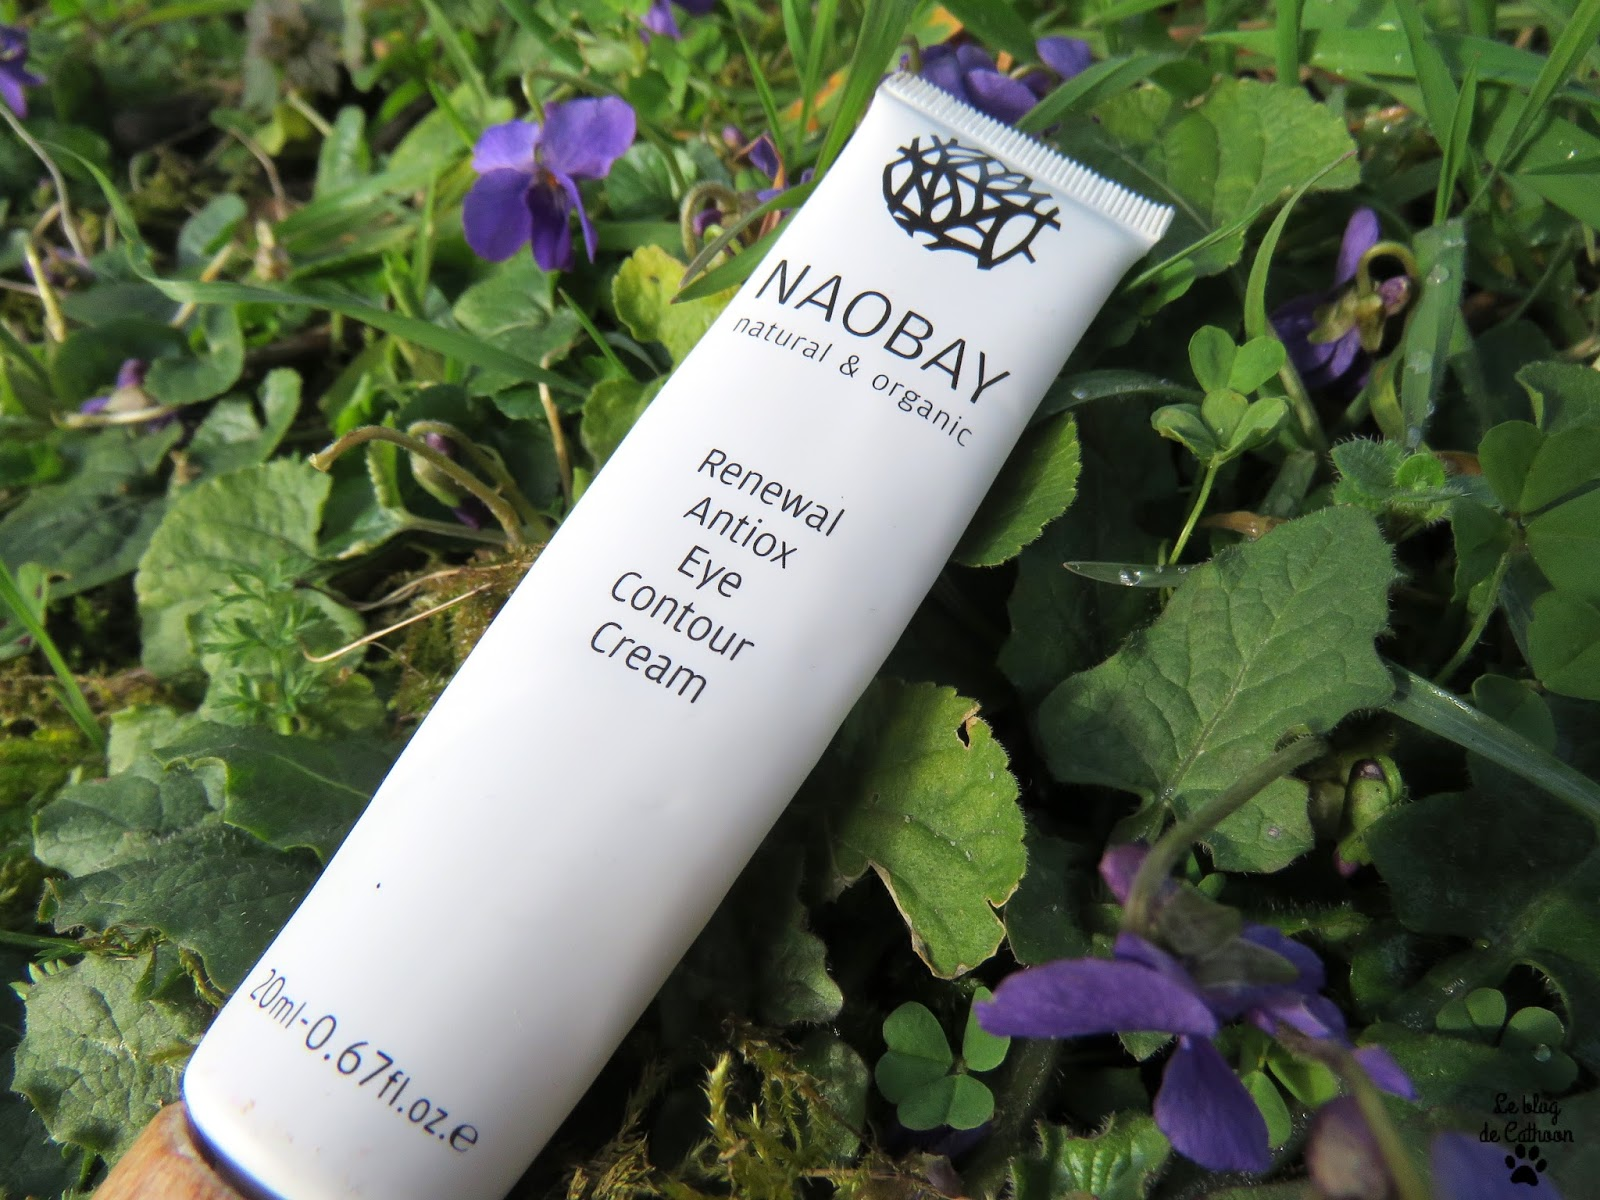 Renewal Antiox Eye Contour Cream - Naobay Naturel & Organic